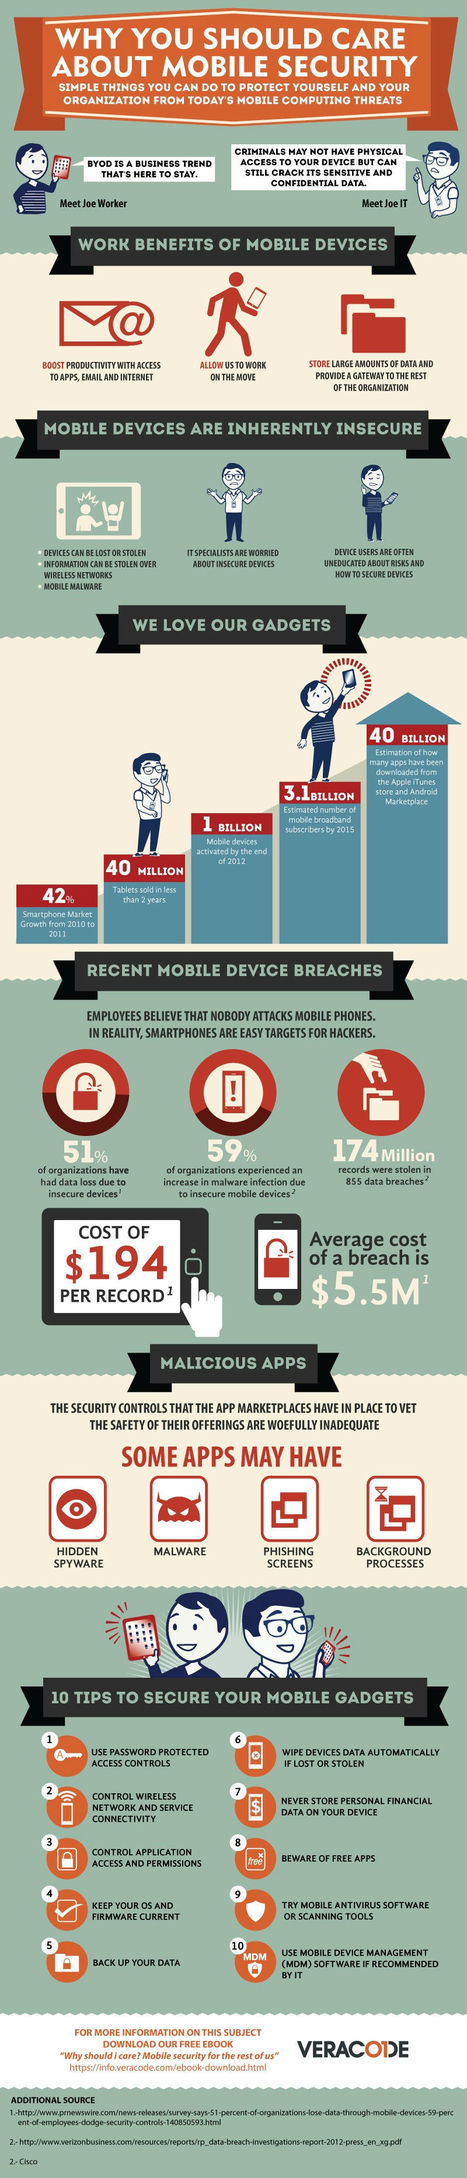 Why You Should Care About Mobile Security [INFOGRAPHIC] | SENSES project: Assembling your digital toolkit | Scoop.it